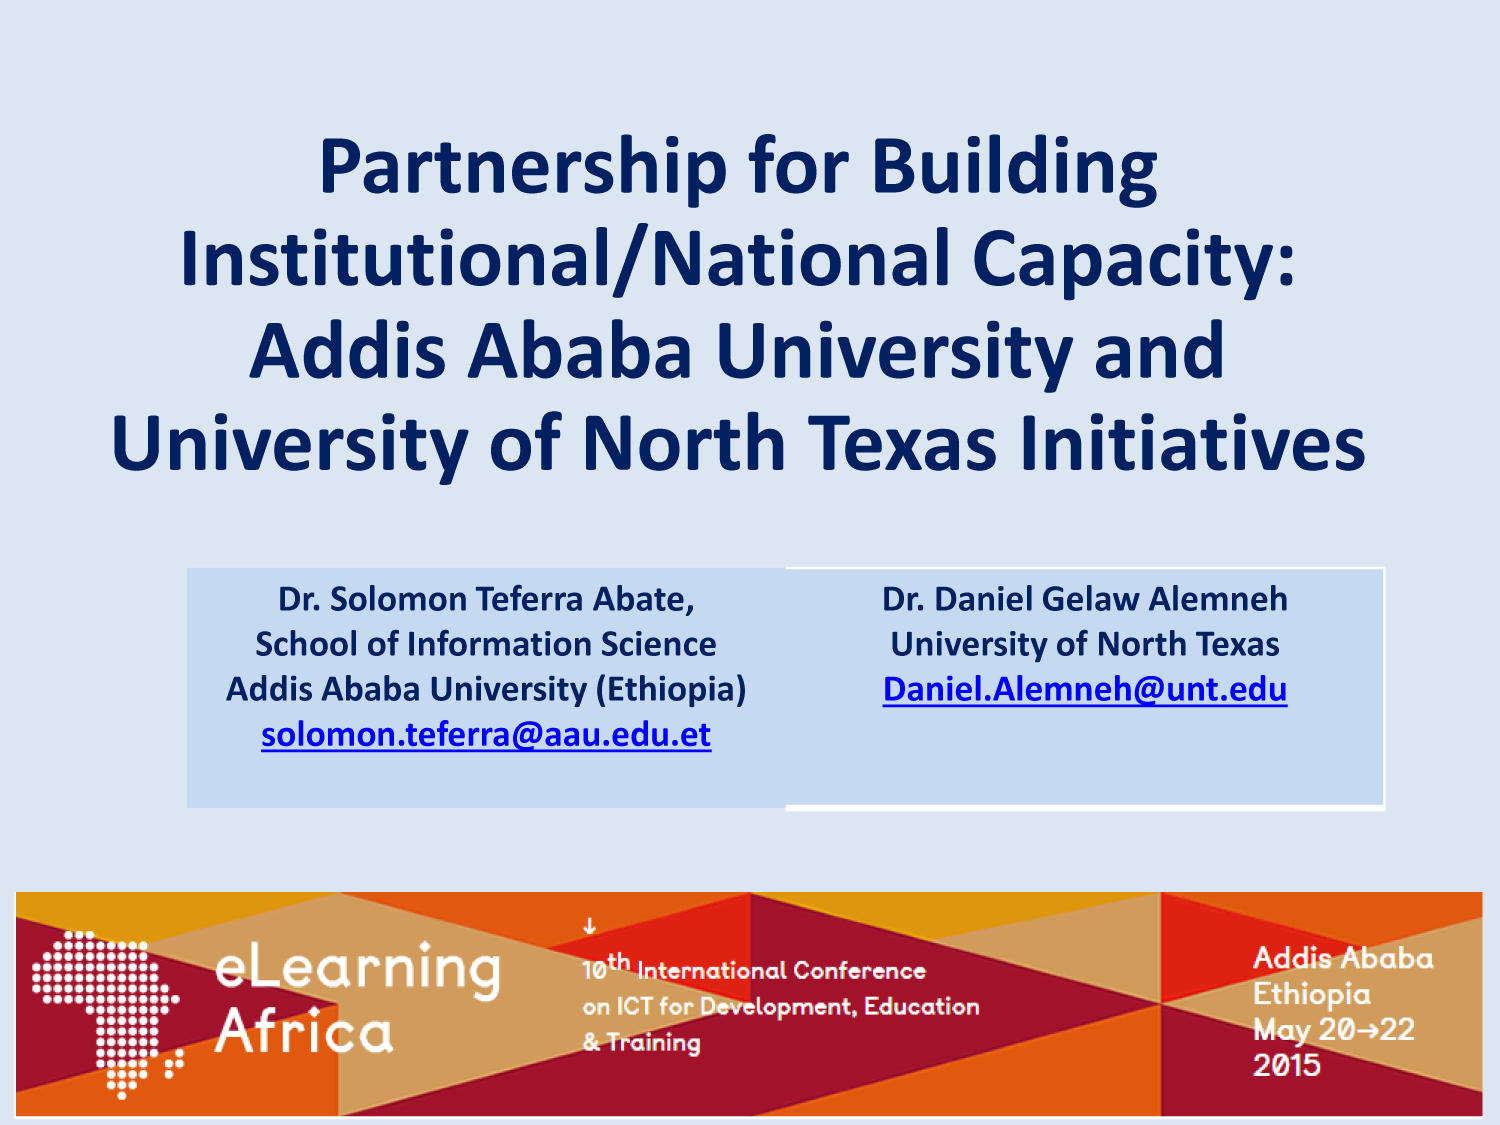 Partnership for Building Institutional/National Capacity: Addis